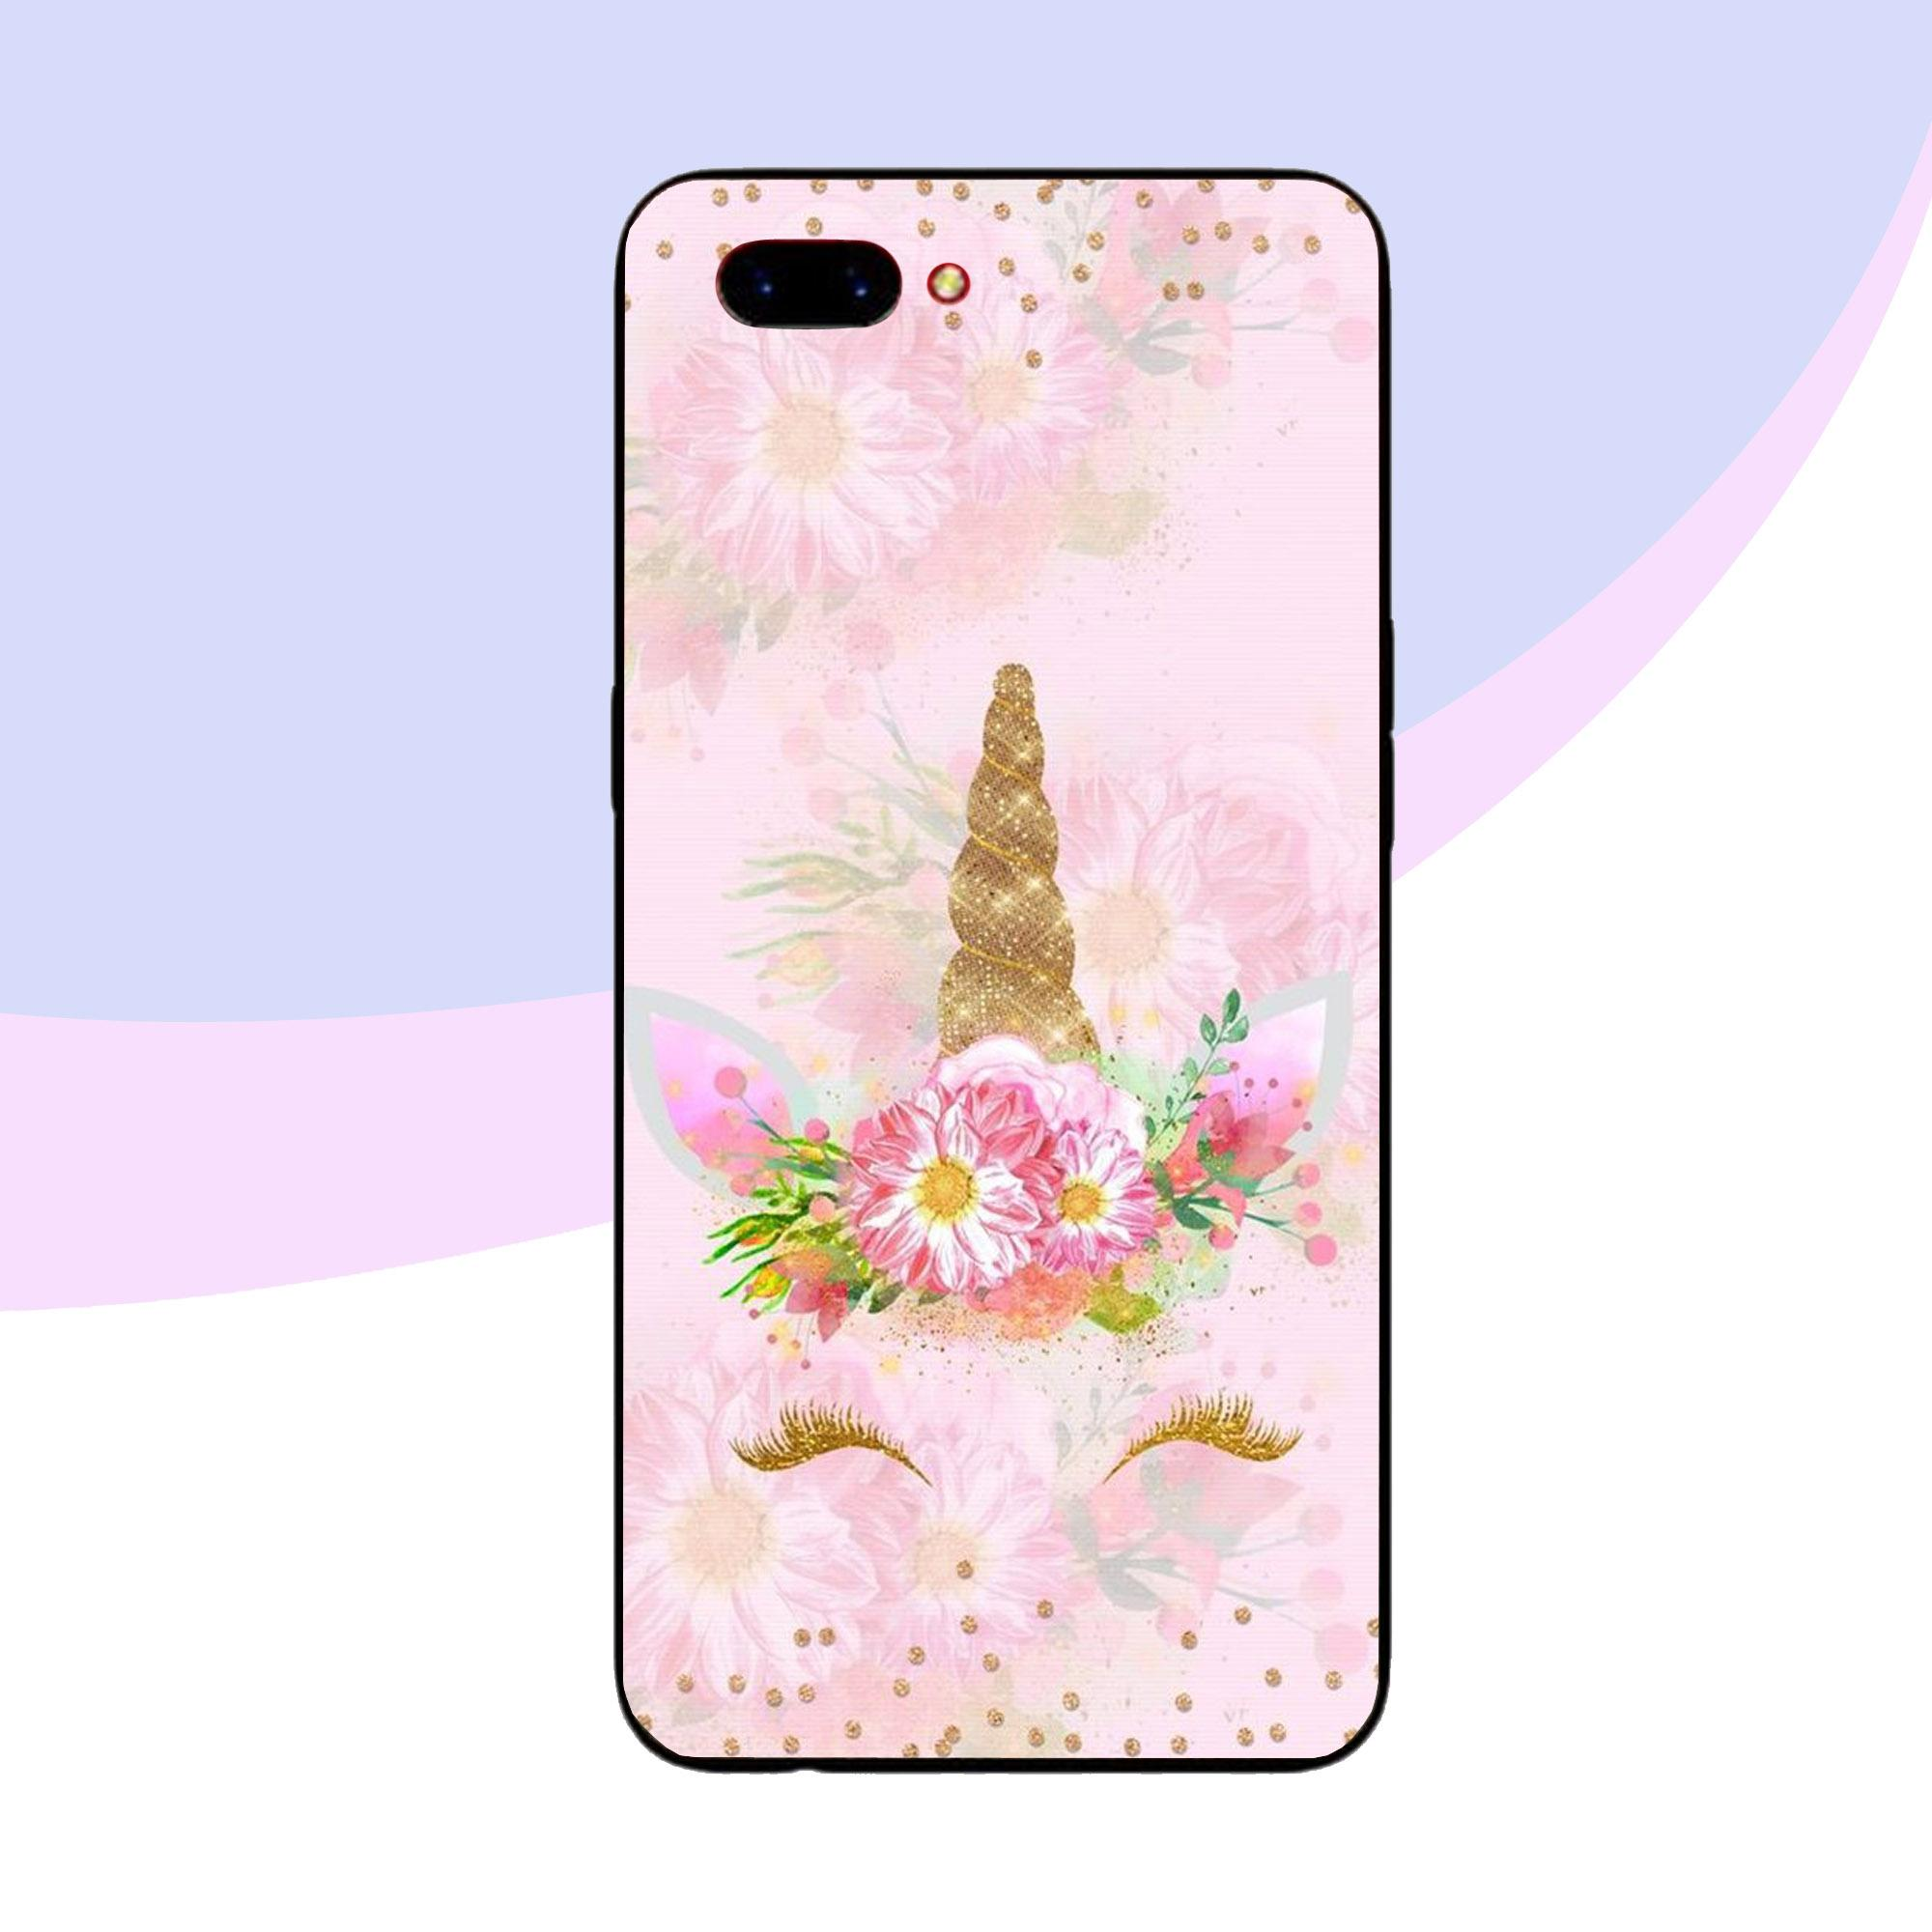 Case Oppo A3S - New Unicorn Series